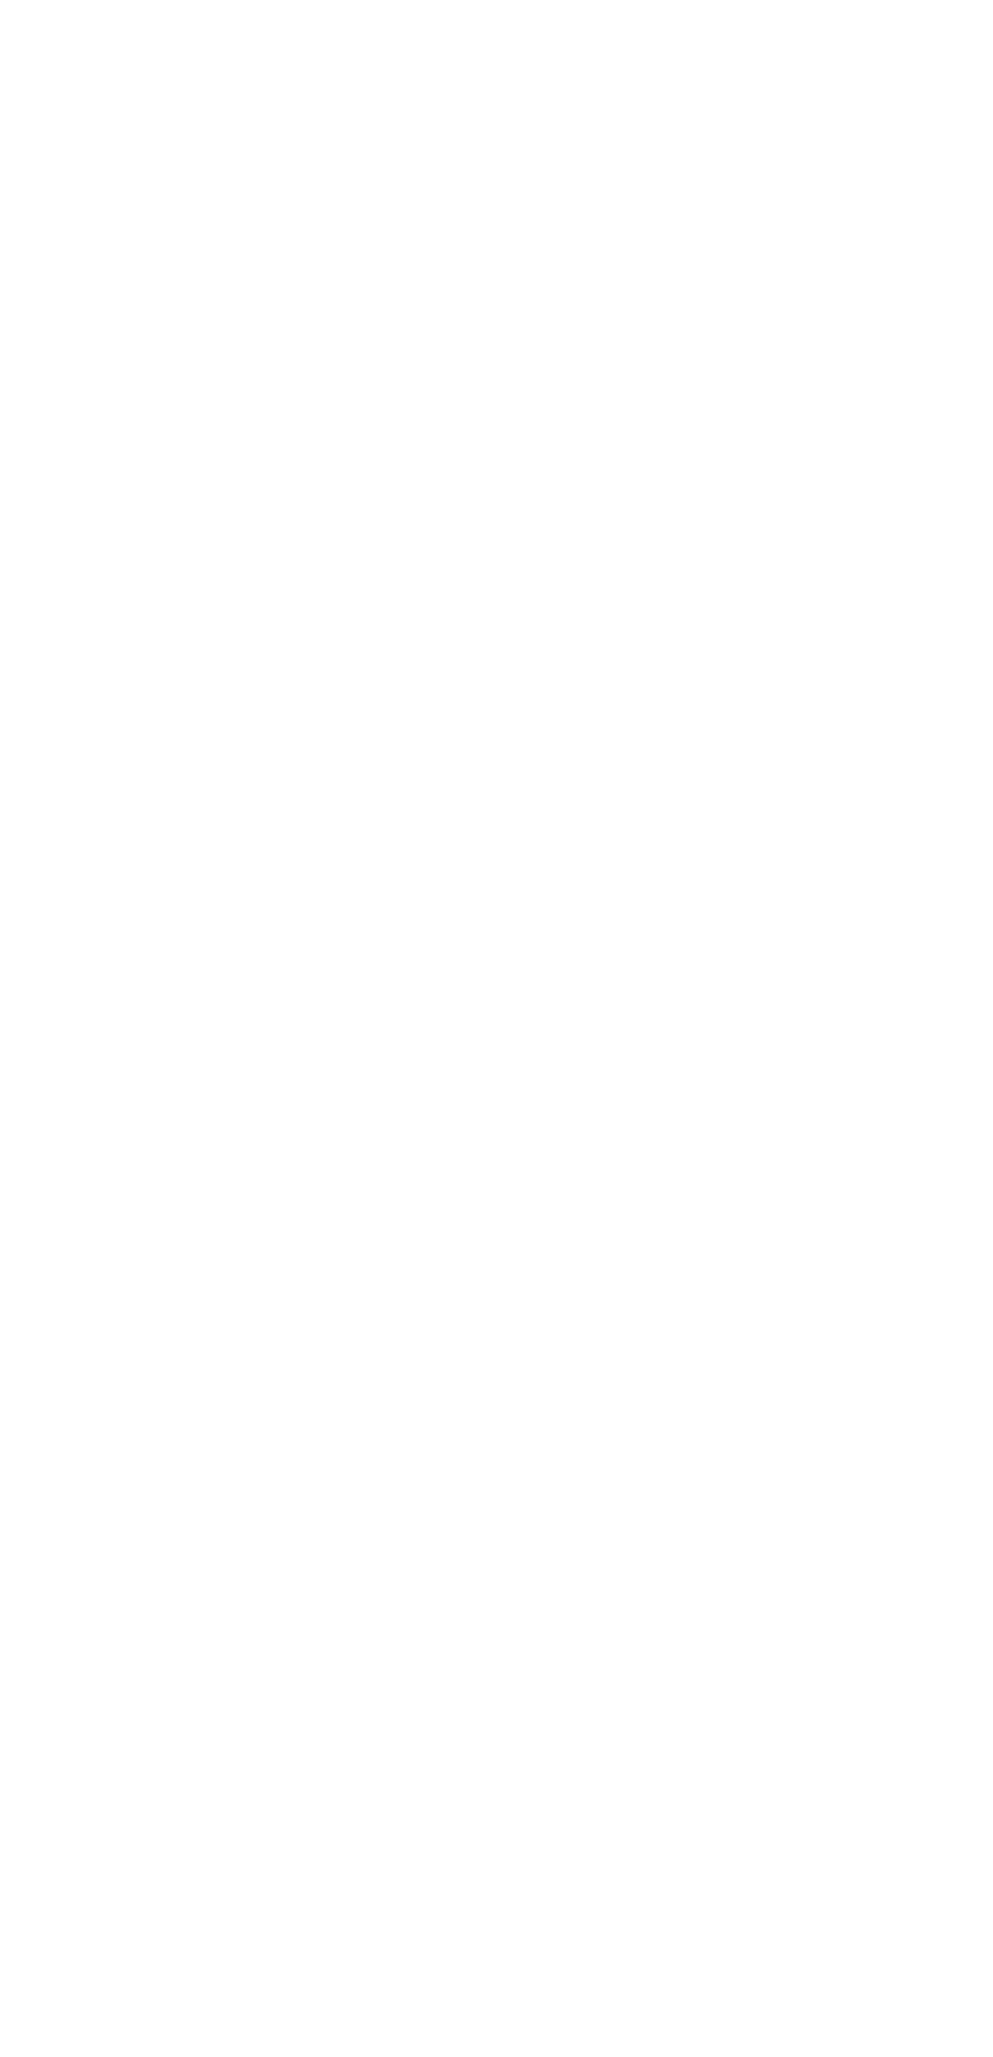 Dams Out California Trout